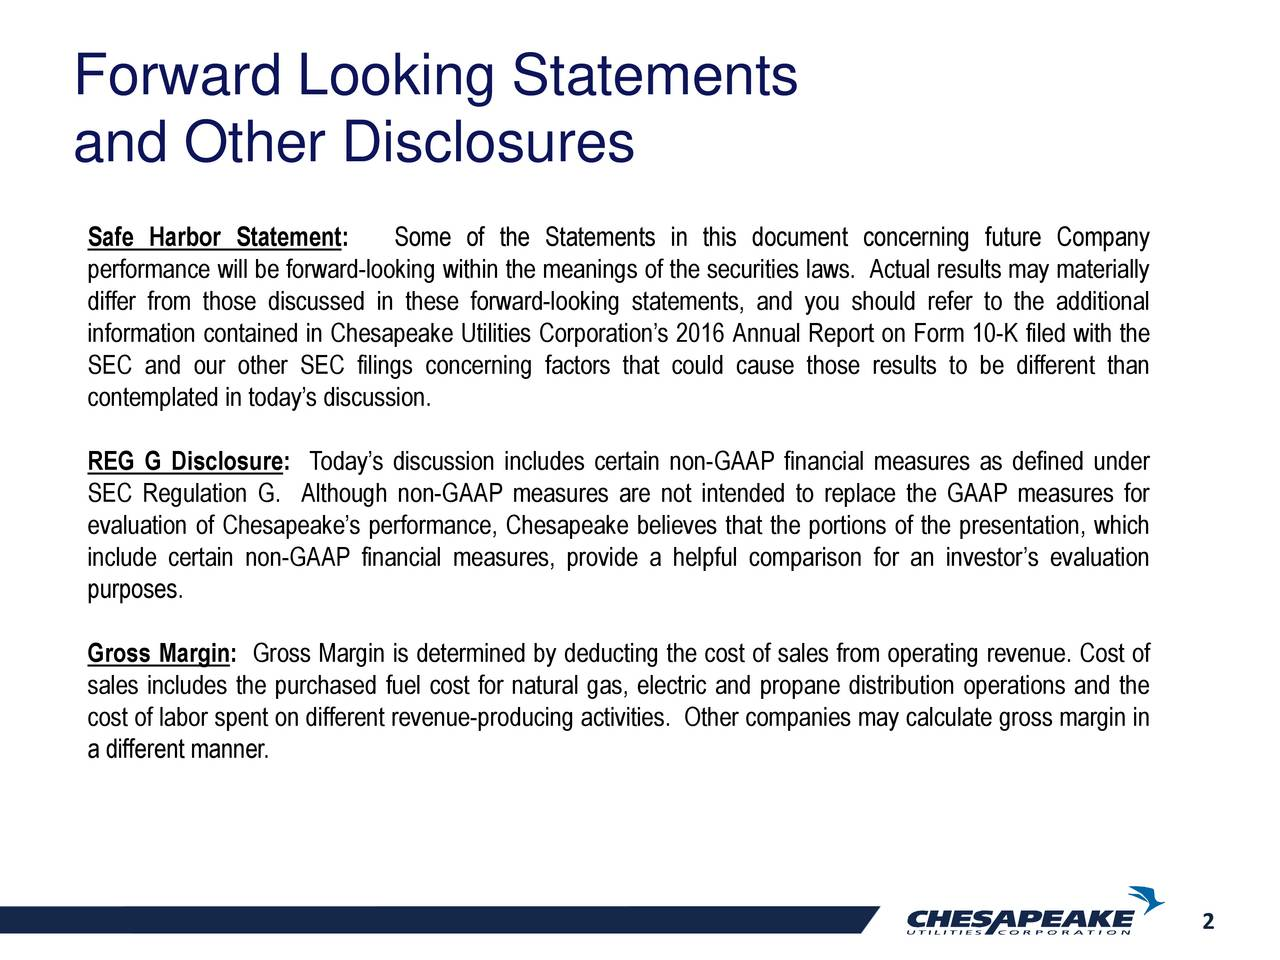 and Other Disclosures Safe Harbor Statement: Some of the Statements in this document concerning future Company performance will be forward-looking within the meanings of the securities laws. Actual results may materially differ from those discussed in these forward-looking statements, and you should refer to the additional information contained in Chesapeake Utilities Corporations 2016 Annual Report on Form 10-K filed with the SEC and our other SEC filings concerning factors that could cause those results to be different than contemplated in todays discussion. REG G Disclosure: Todays discussion includes certain non-GAAP financial measures as defined under SEC Regulation G. Although non-GAAP measures are not intended to replace the GAAP measures for evaluation of Chesapeakes performance, Chesapeake believes that the portions of the presentation, which include certain non-GAAP financial measures, provide a helpful comparison for an investors evaluation purposes. Gross Margin: Gross Margin is determined by deducting the cost of sales from operating revenue. Cost of sales includes the purchased fuel cost for natural gas, electric and propane distribution operations and the cost of labor spent on different revenue-producing activities. Other companies may calculate gross margin in a different manner. 2